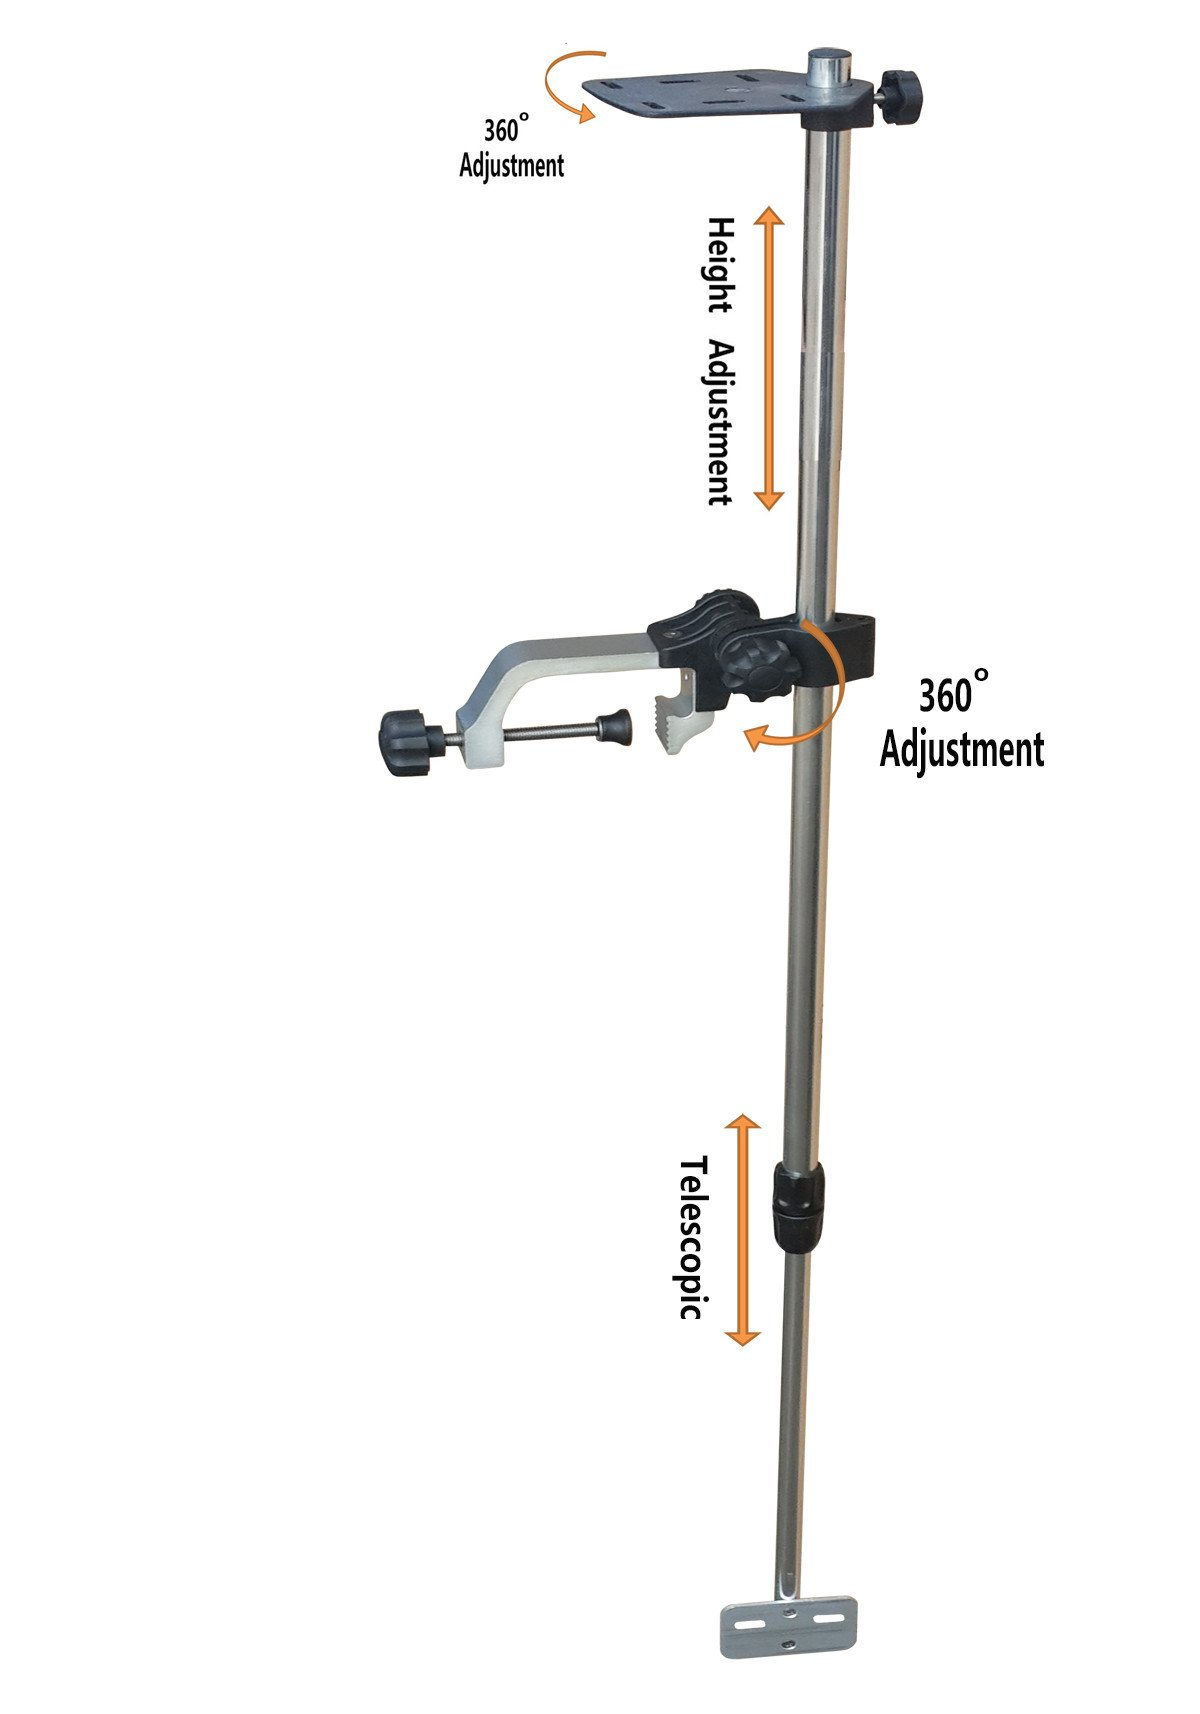 Brocraft Telescopic Portable Transducer Bracket + Universal Fishfinder Mount